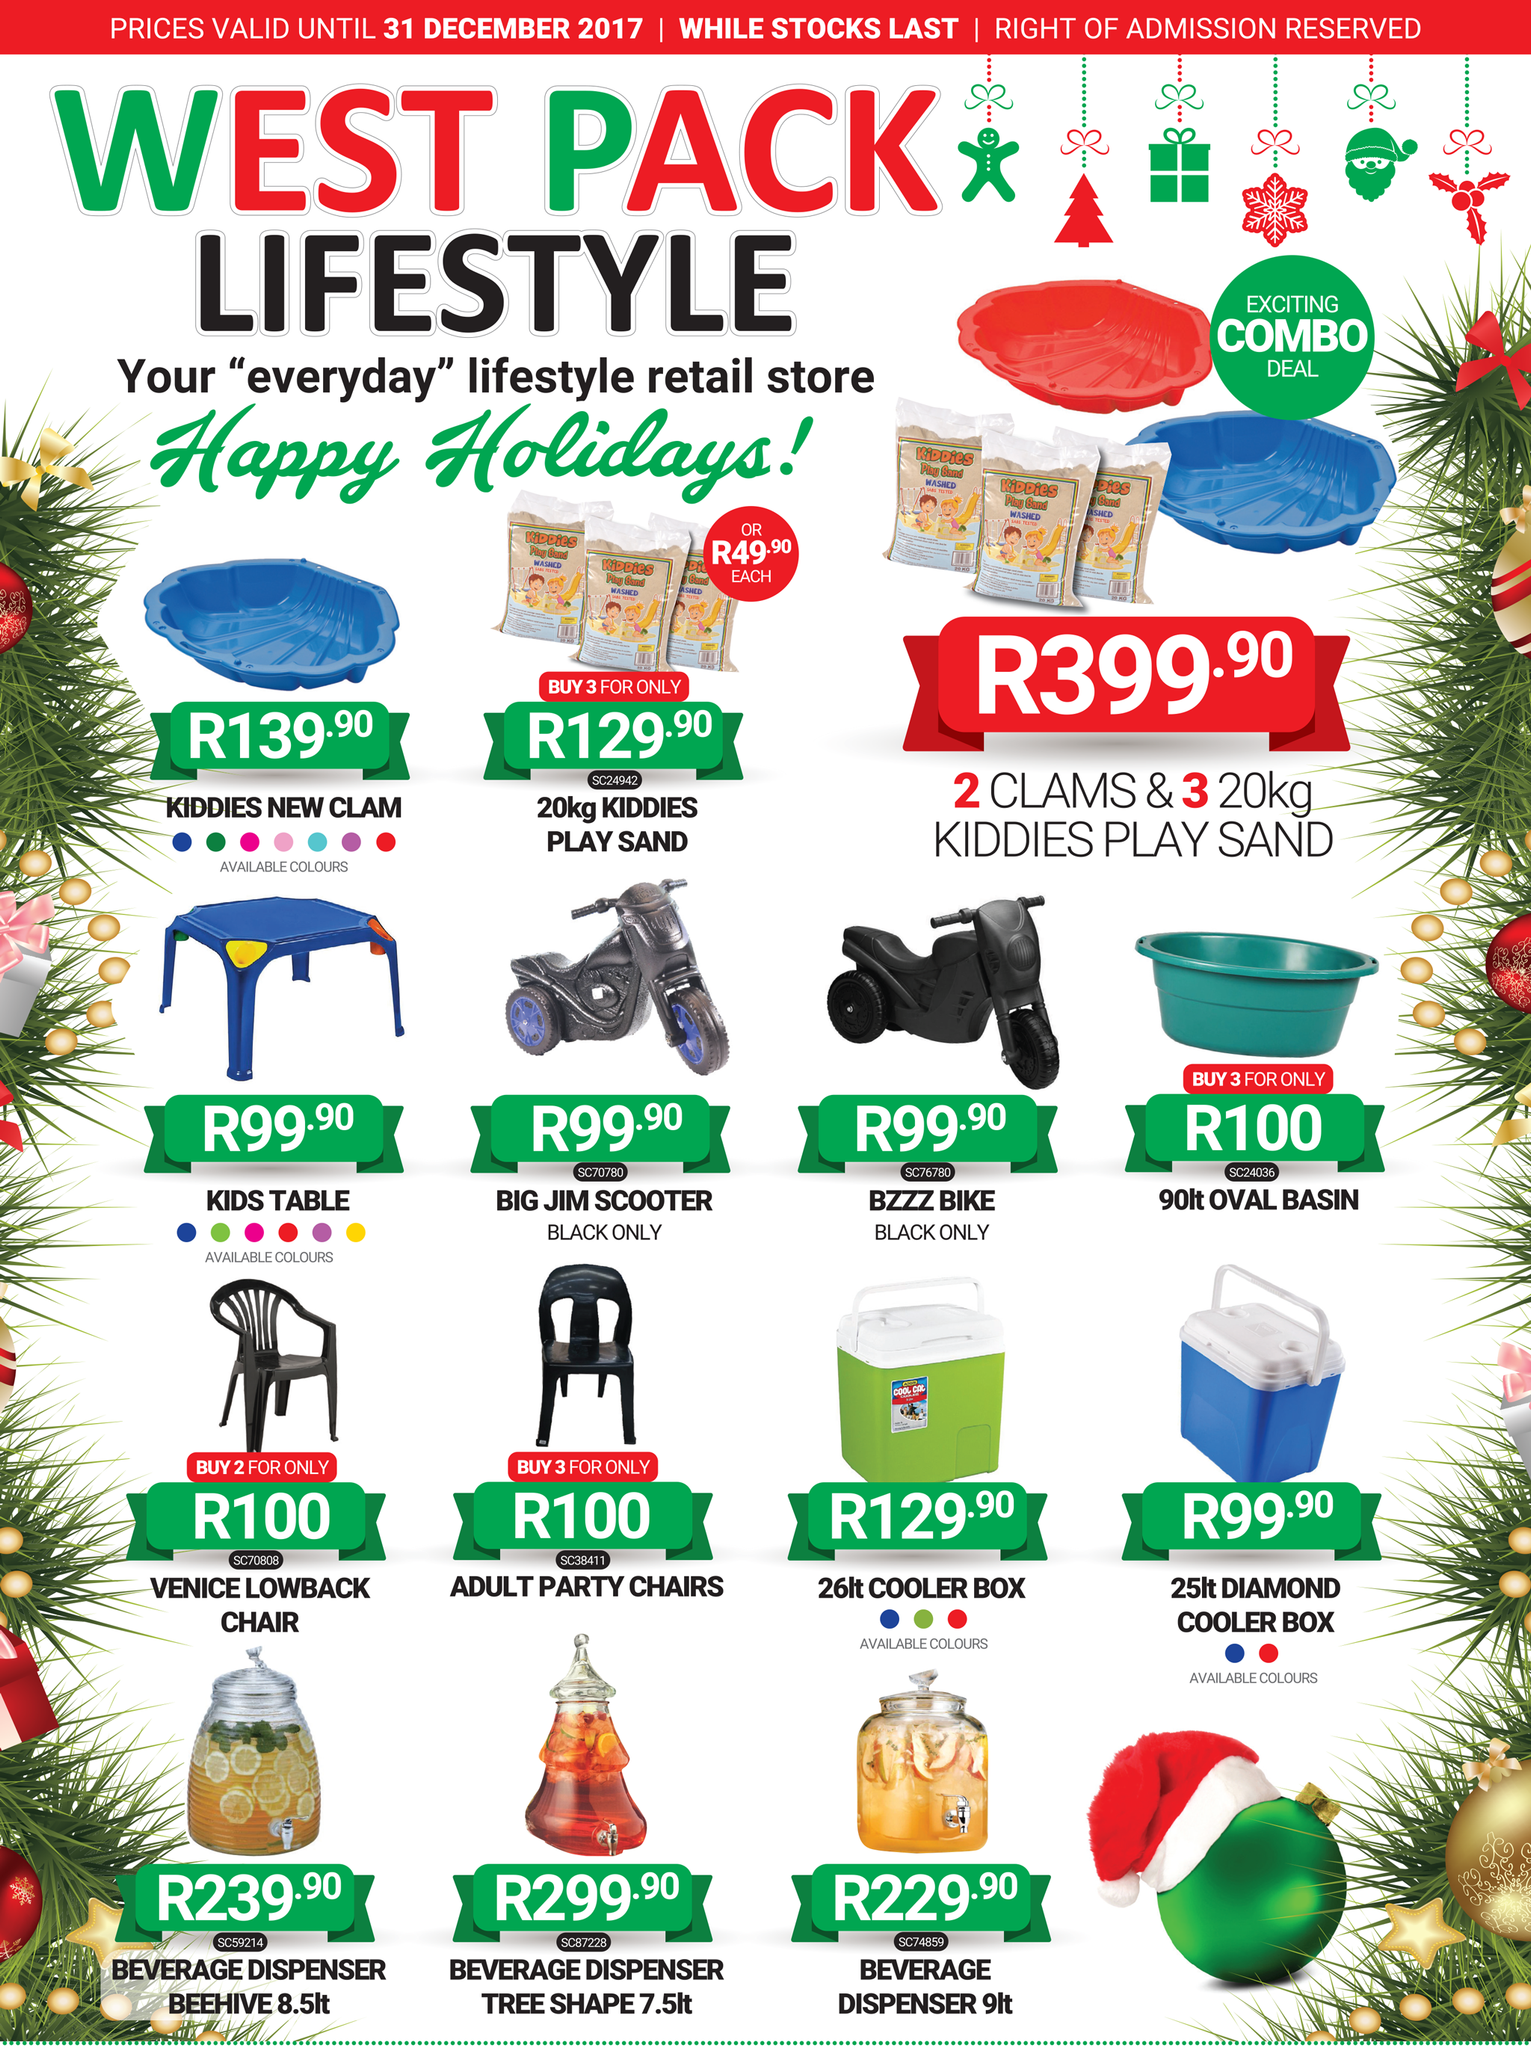 West Pack Lifestyle Christmas Specials